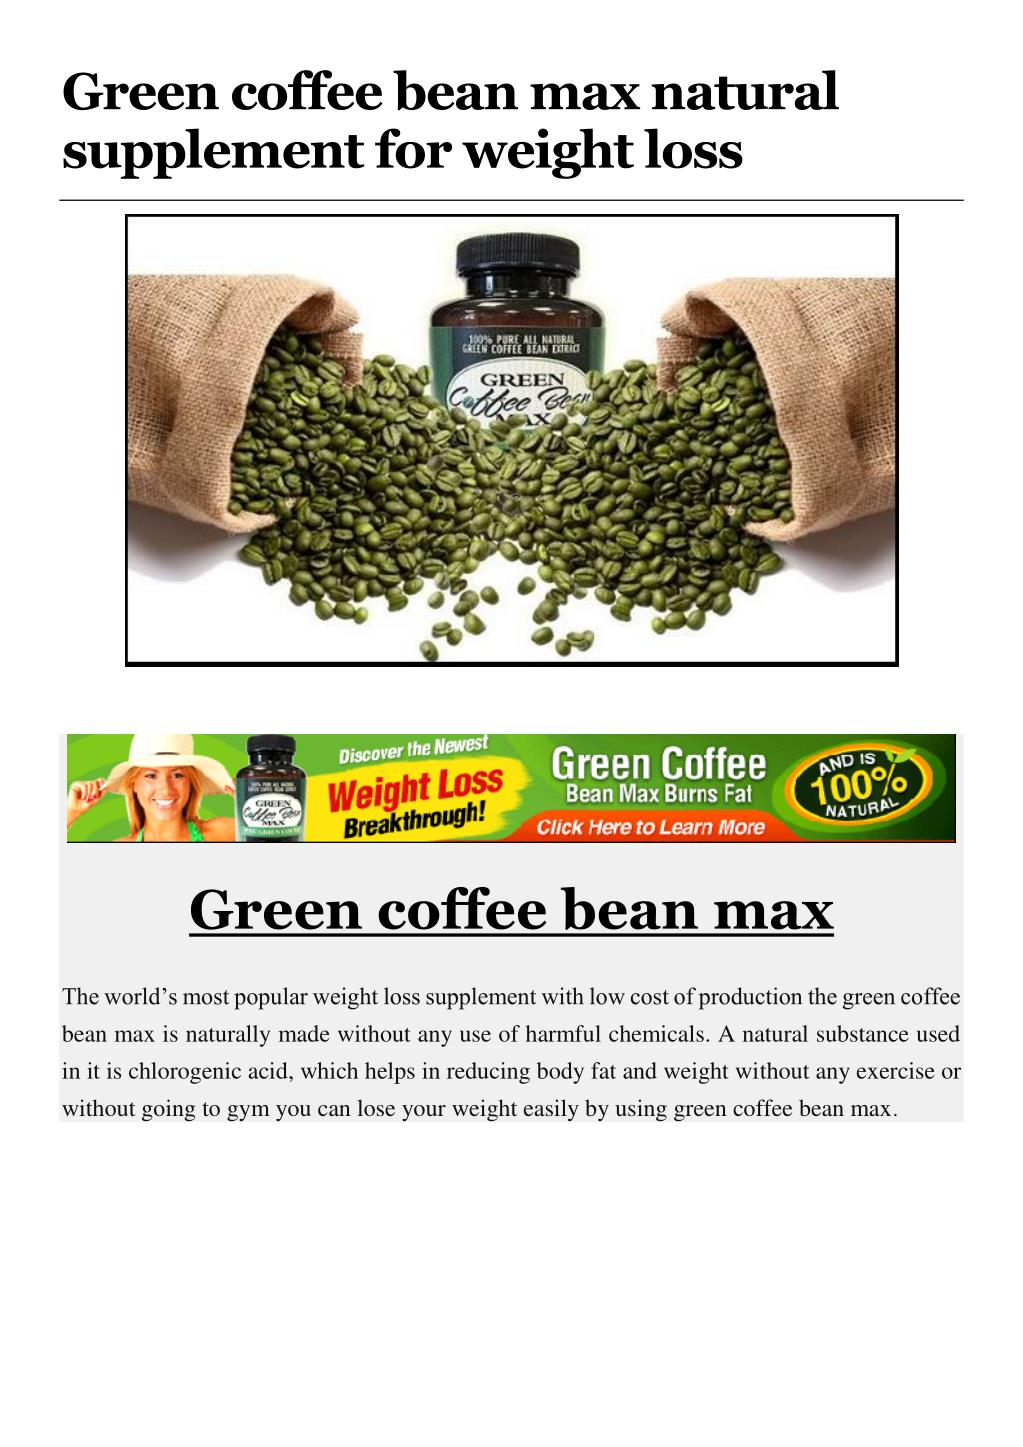 Ppt Green Coffee Bean Max Natural Supplement For Weight Loss